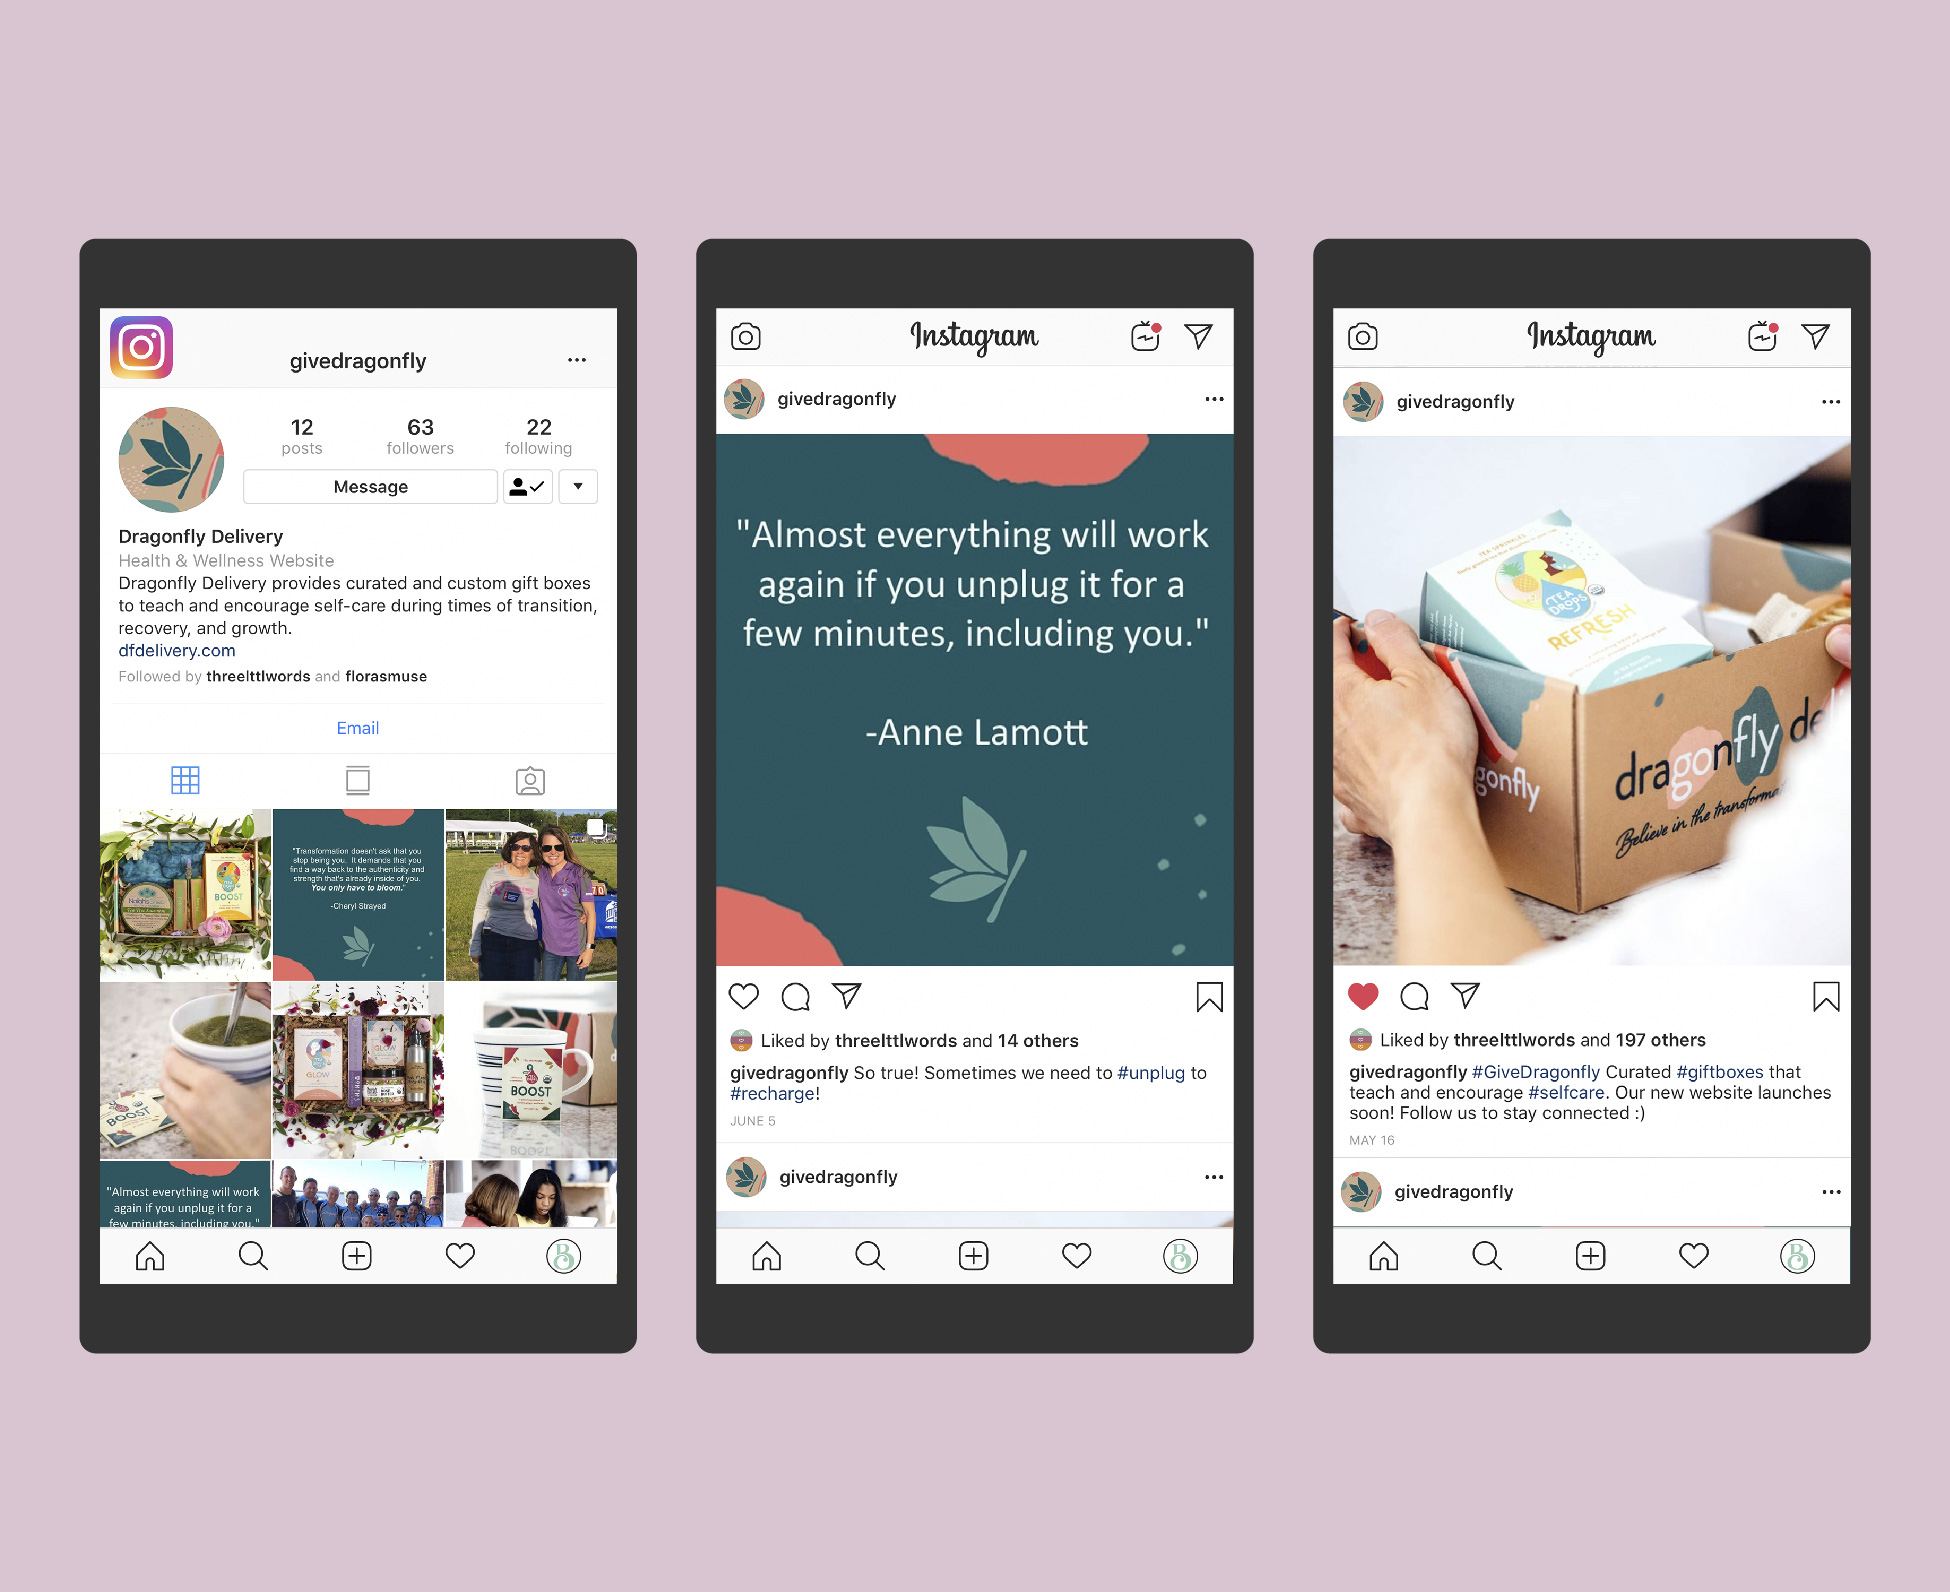 Dragonfly Delivery Instagram Feed Design @givedragonfly